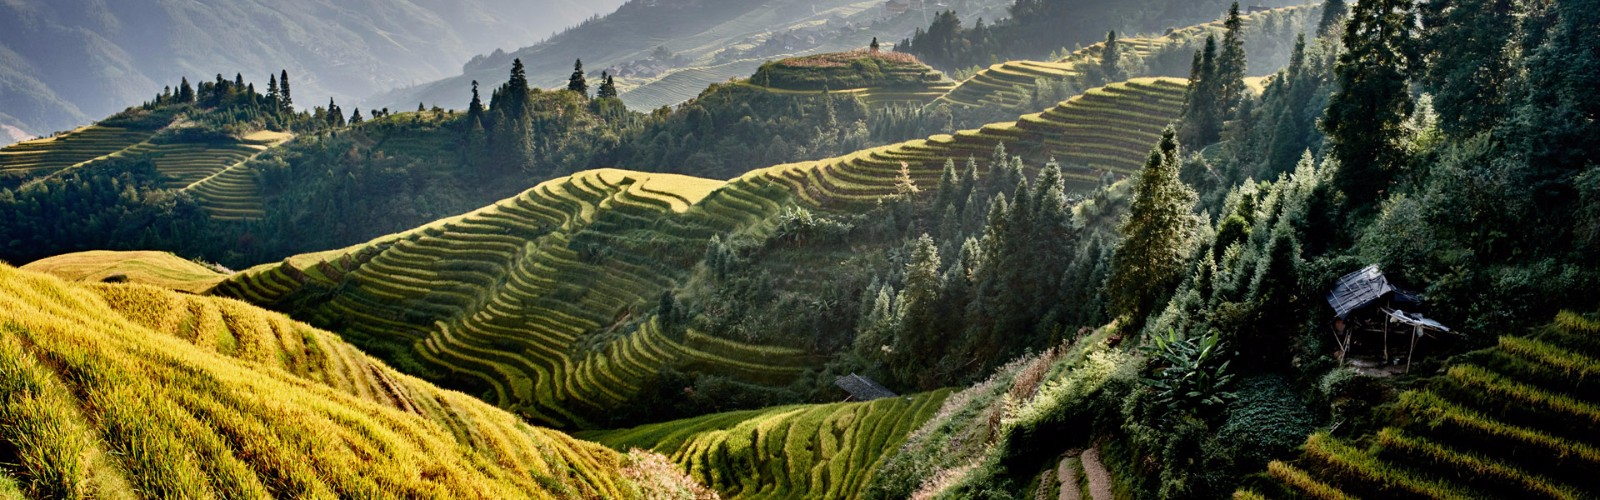 Longsheng Rice Terraces Holidays